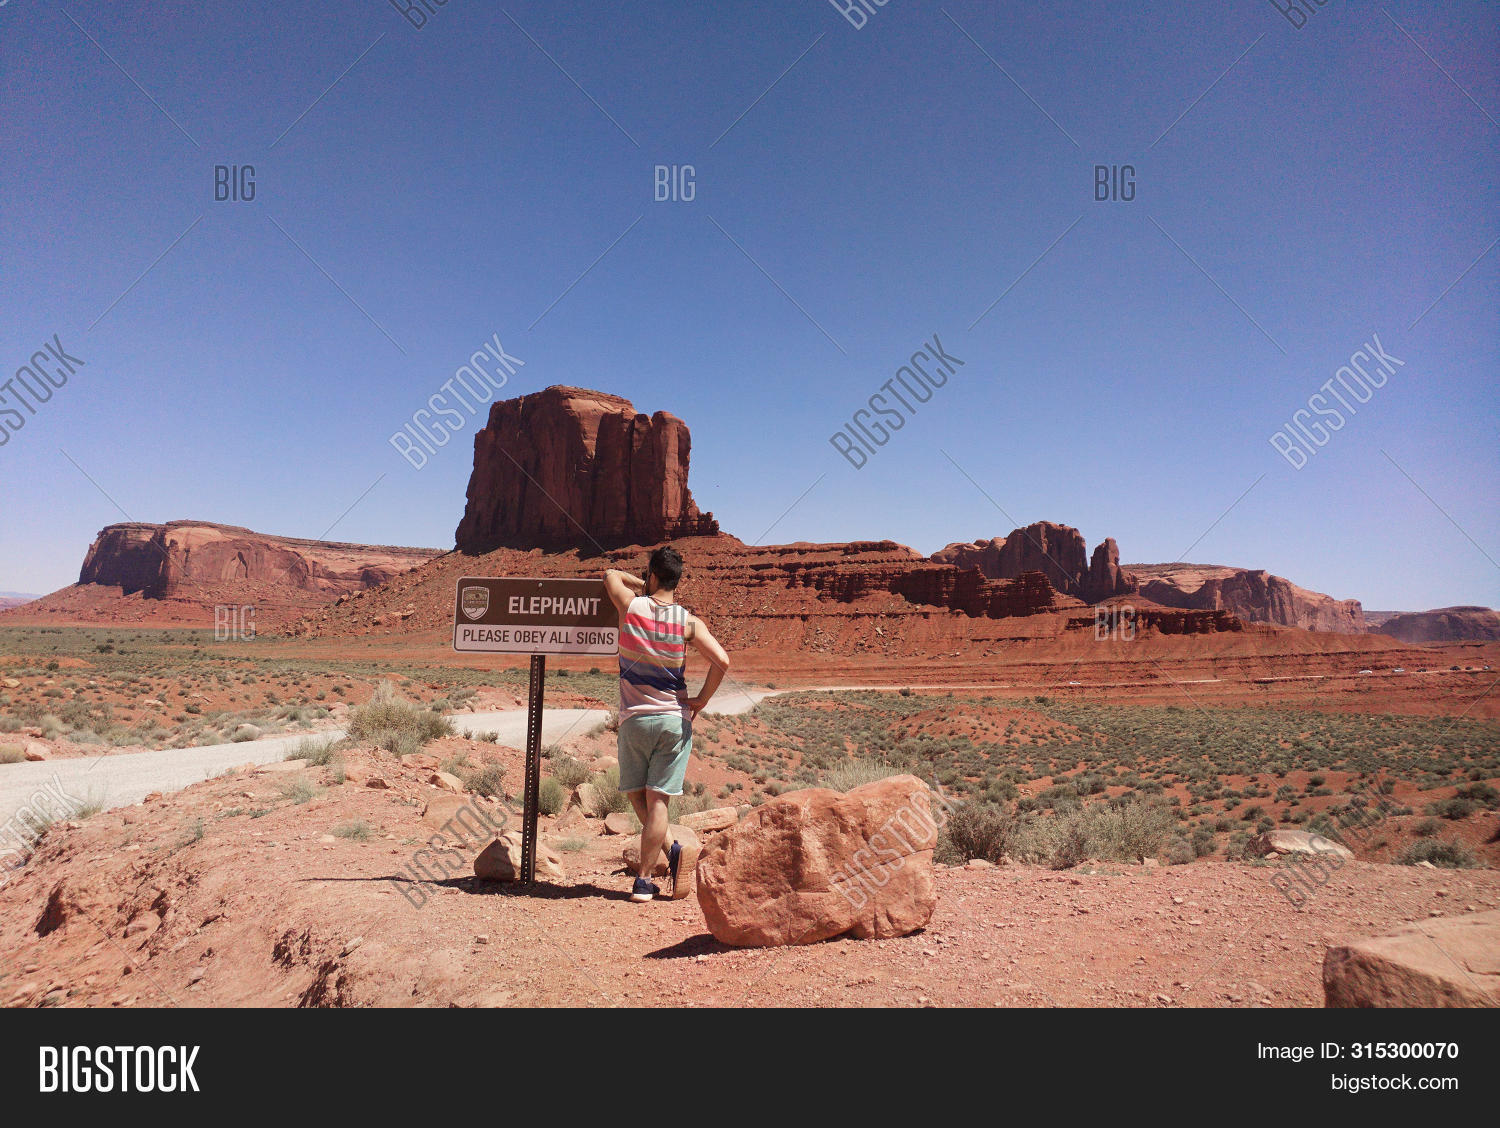 amazing,america,american,arch,arizona,blue,clouds,desert,dramatic,formation,geological,grand,indian,land,landscape,location,mesa,mitten,monument,mountain,national,natural,nature,navajo,navao,outdoors,park,red,rock,sand,sandstone,scenic,sky,southwest,stone,tourism,travel,tribal,usa,ut,utah,valley,view,west,western,wild,yellow